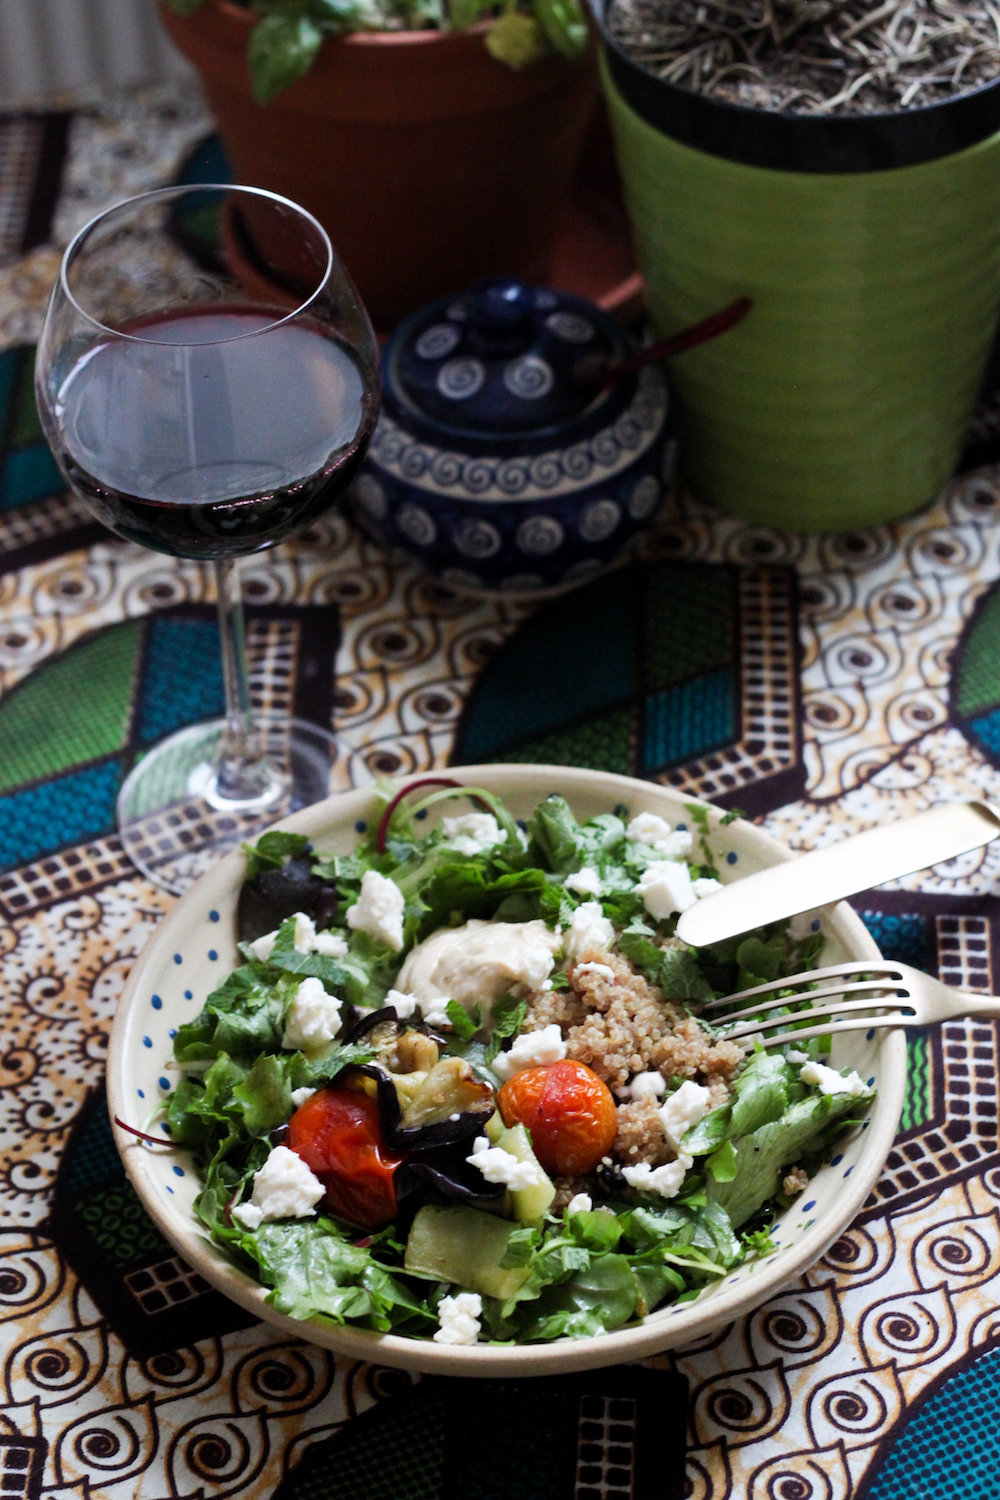 Mediterranean summer salad with roast veggies and hummus (Eat Me. Drink Me.)